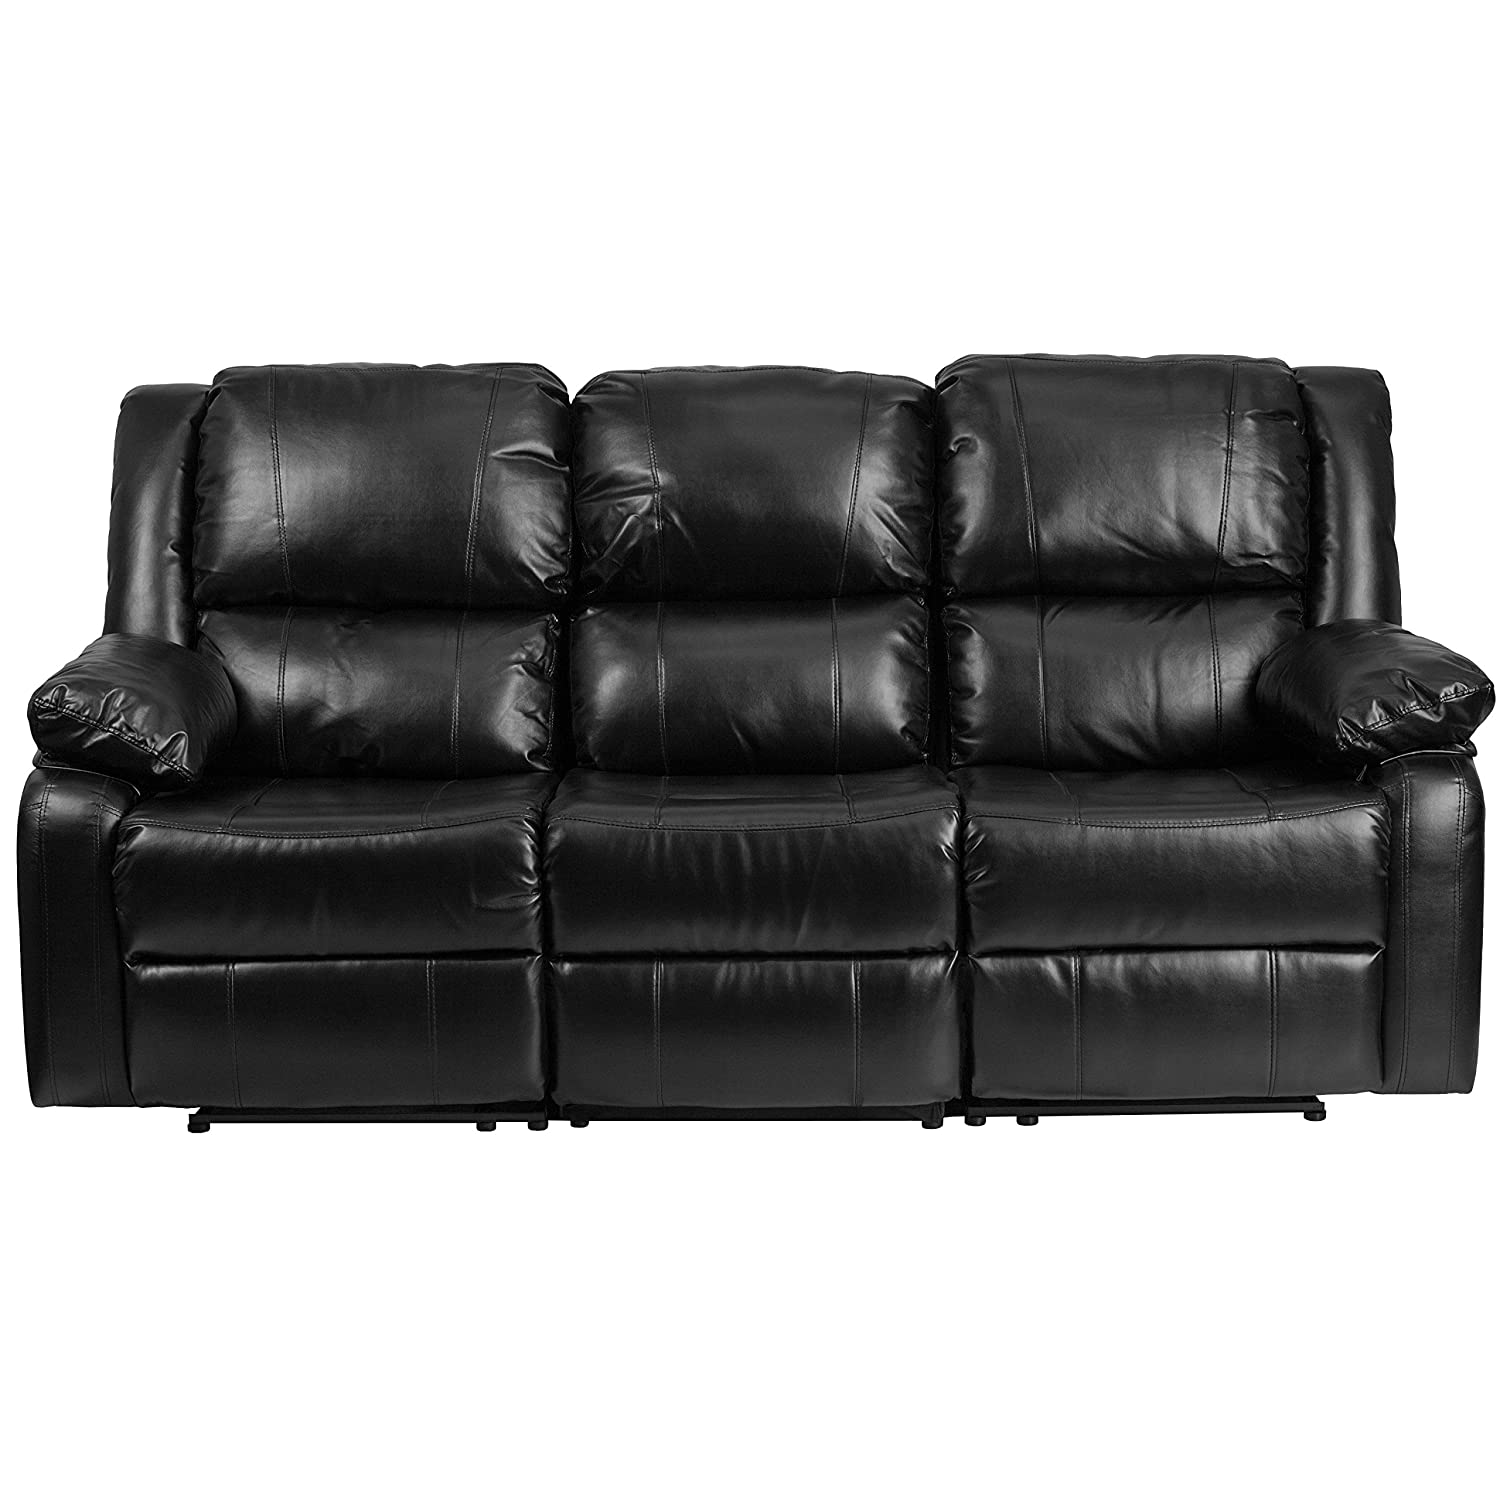 Amazon Flash Furniture Harmony Series Black Leather Sofa with